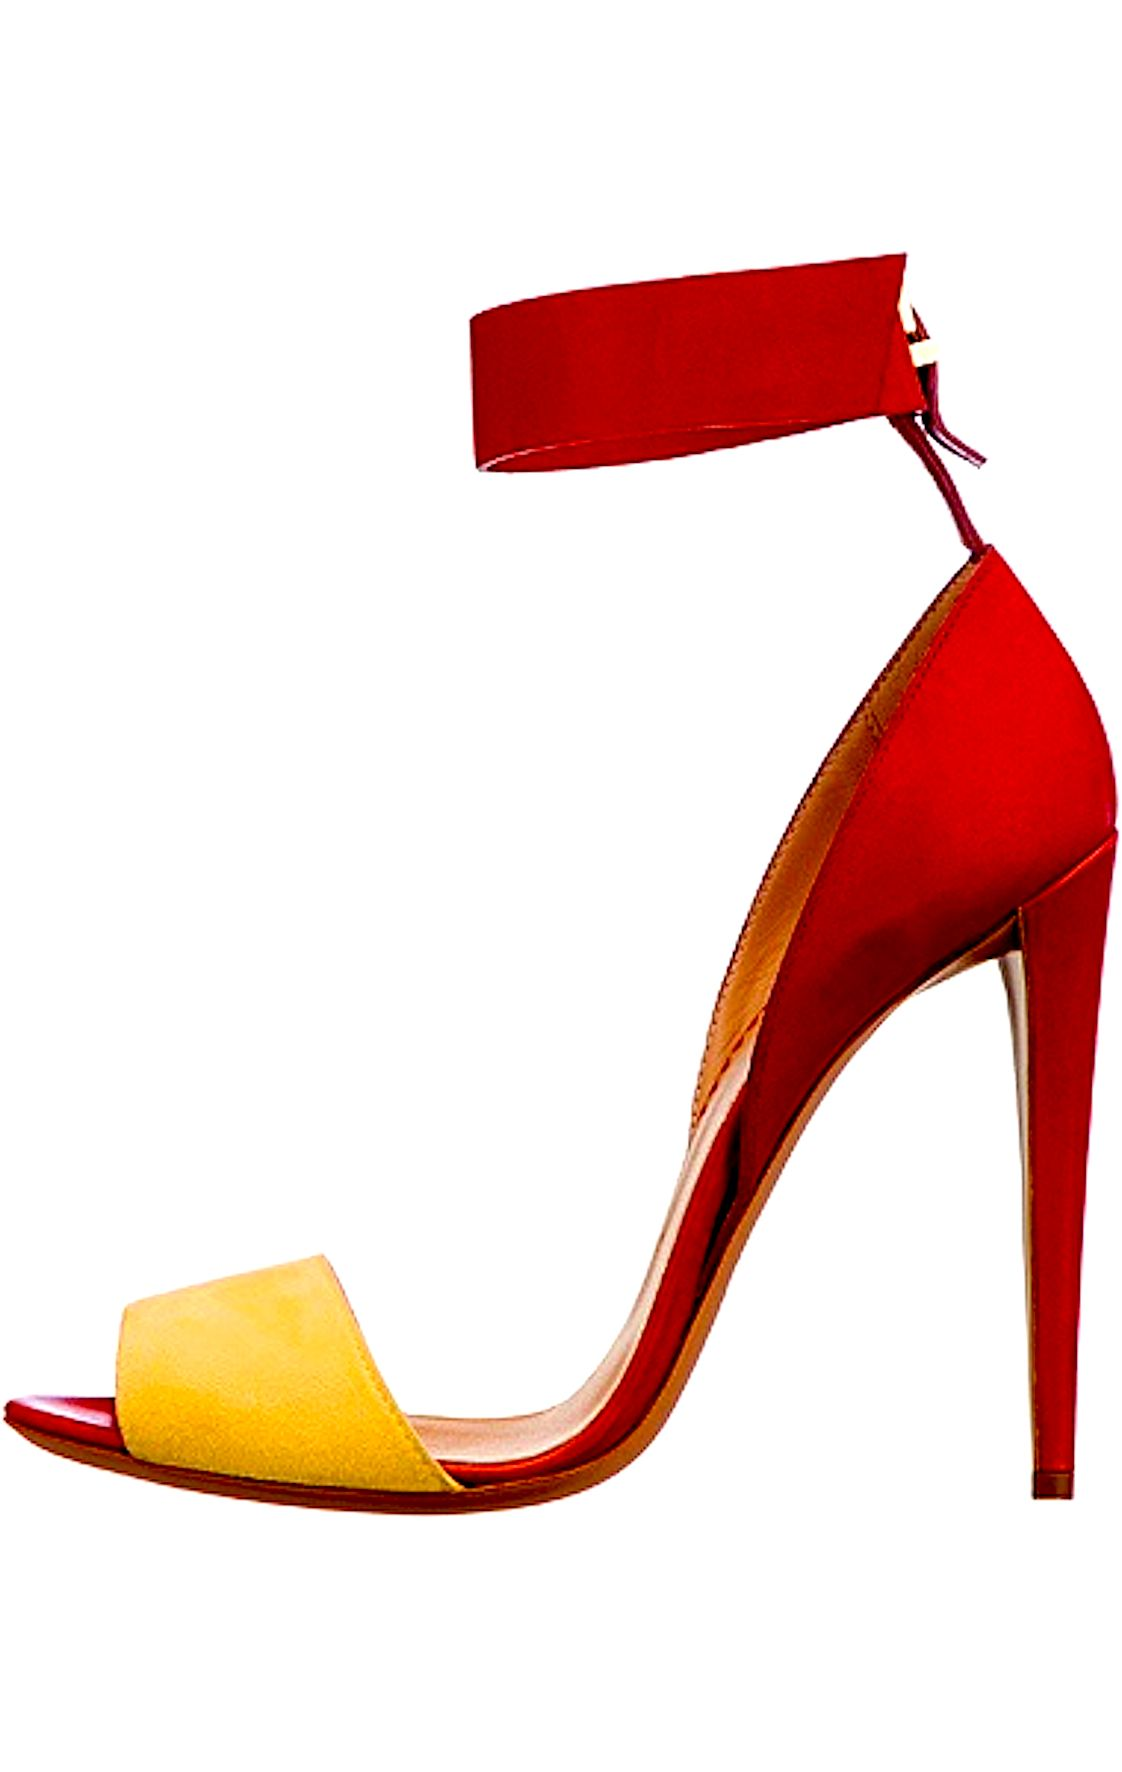 Heat things up with these red and yellow colour block, Emporio Armani heels.  Perfect for summer with a printed dress.